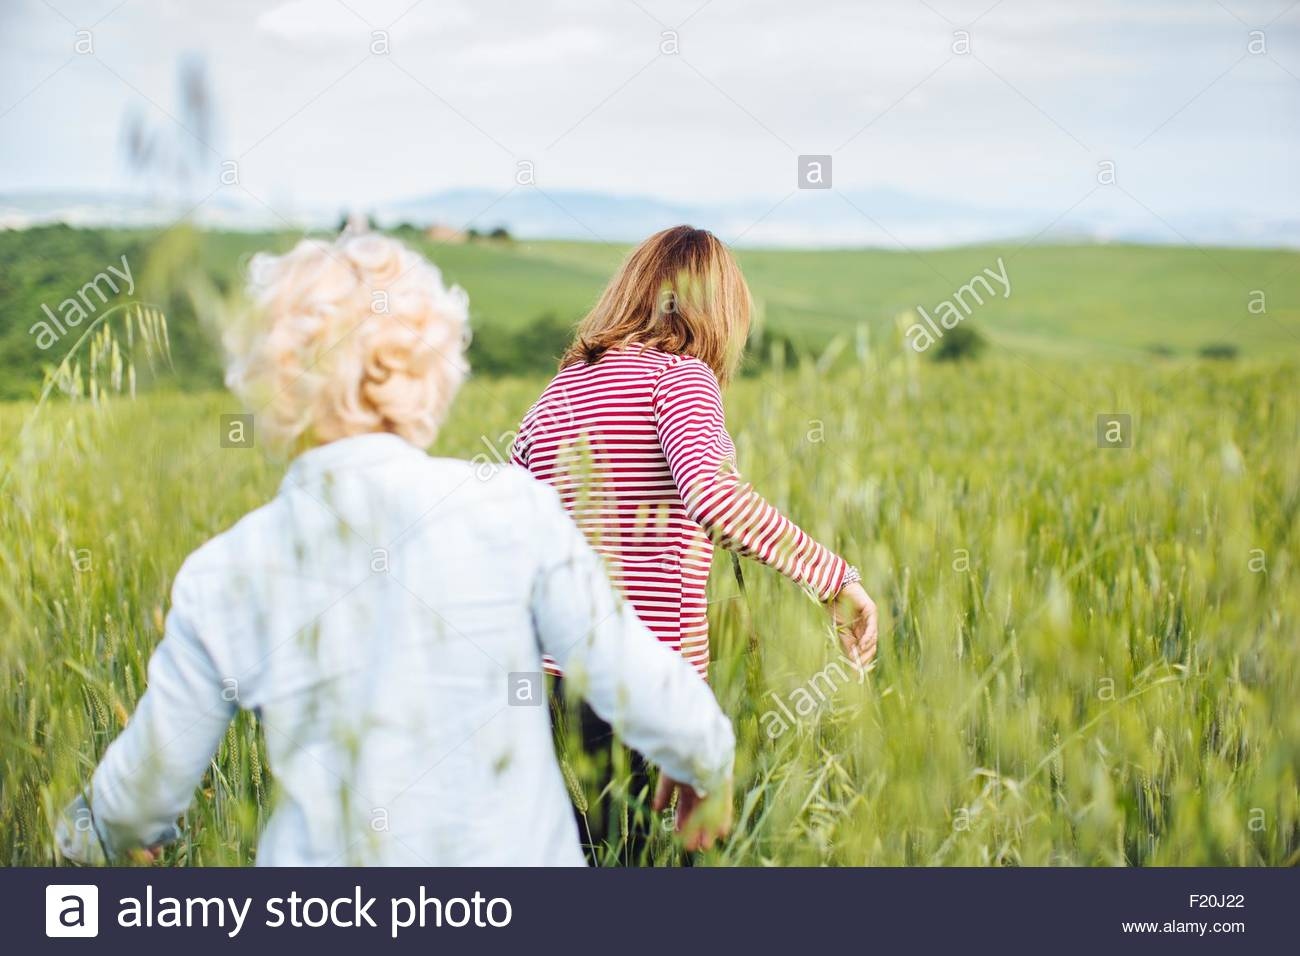 Rear view of two mature female friends walking in wheatfield, Tuscany, Italy - Stock Image